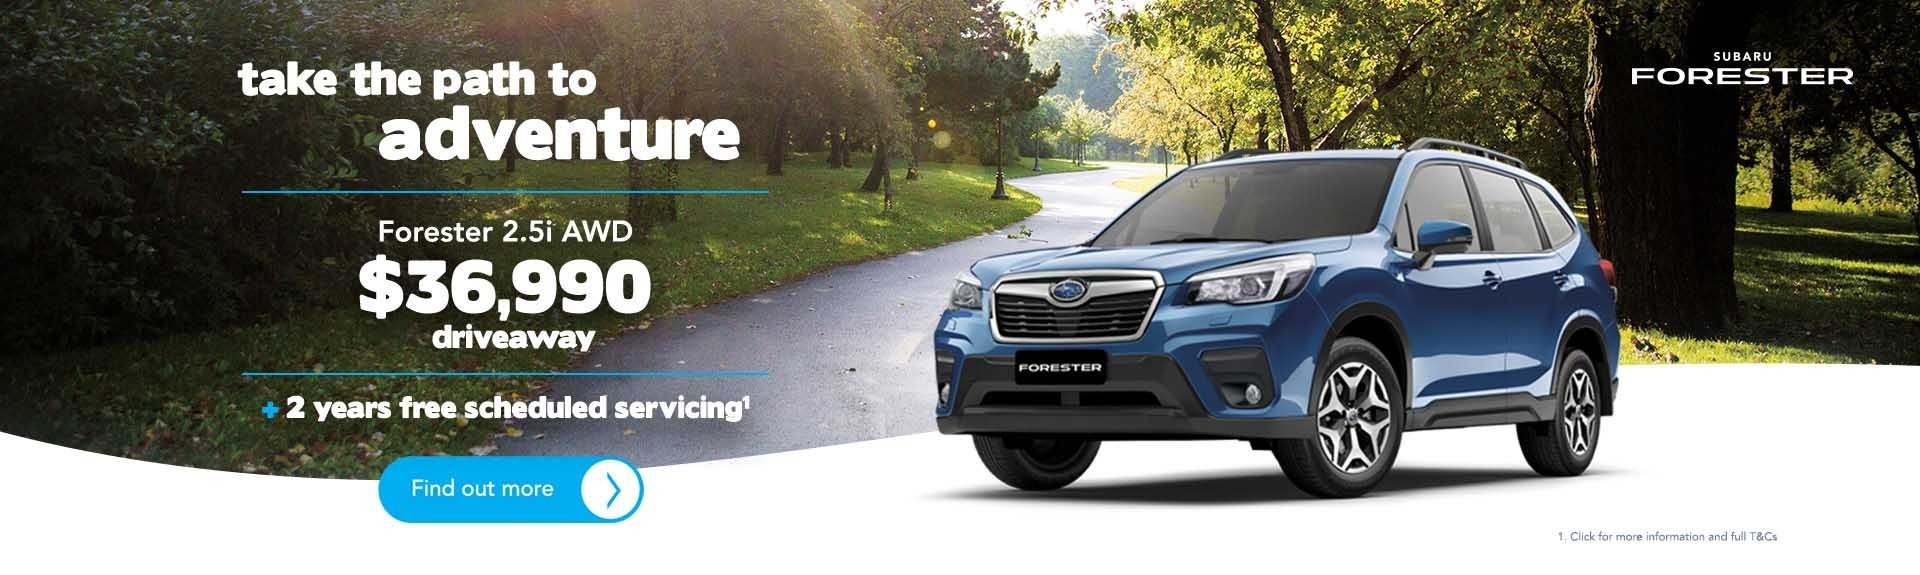 Subaru North Shore - Forester Offer